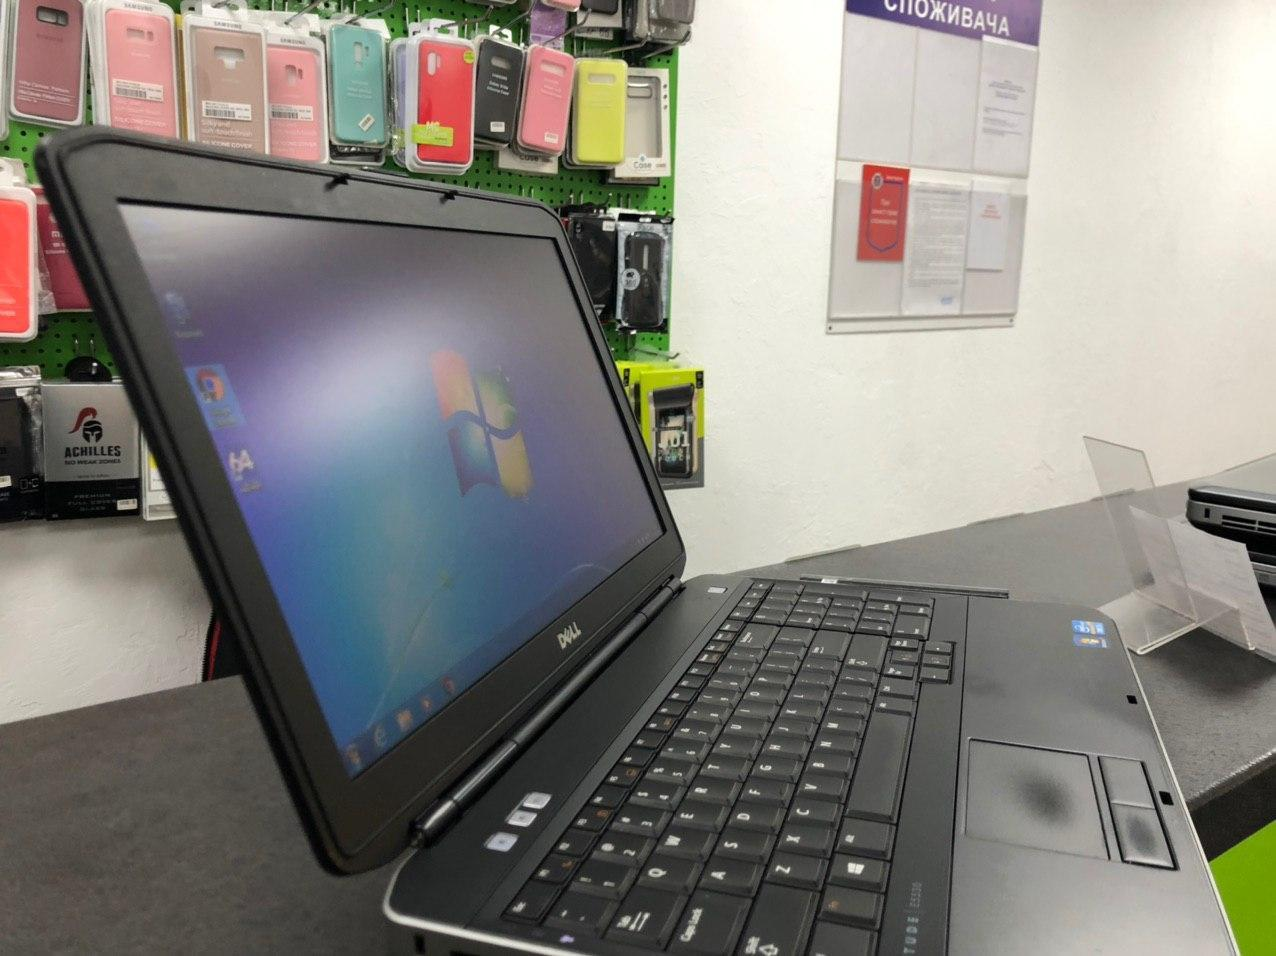 Ноутбук Dell Latitude E5530 | 15.6' | i5 -3230M | RAM 4Gb HDD 320Gb